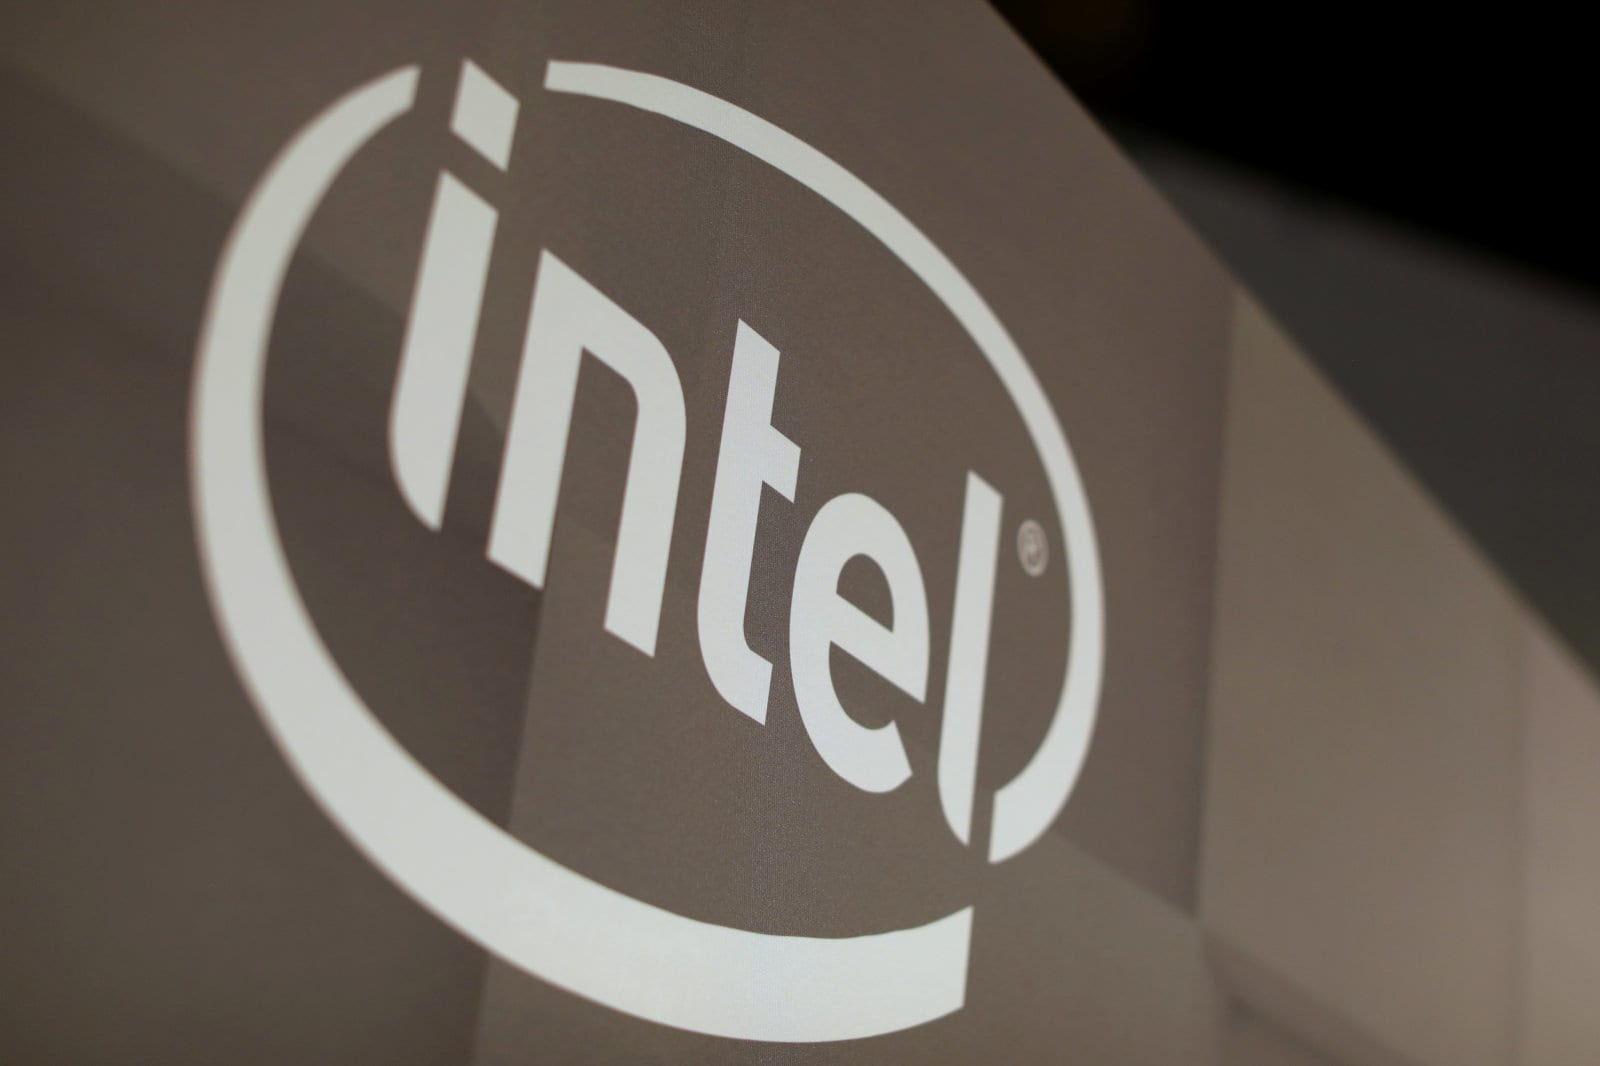 The Intel logo is shown at the E3 2017 Electronic Entertainment Expo in Los Angeles, California, U.S. June 13, 2017.  REUTERS/ Mike Blake